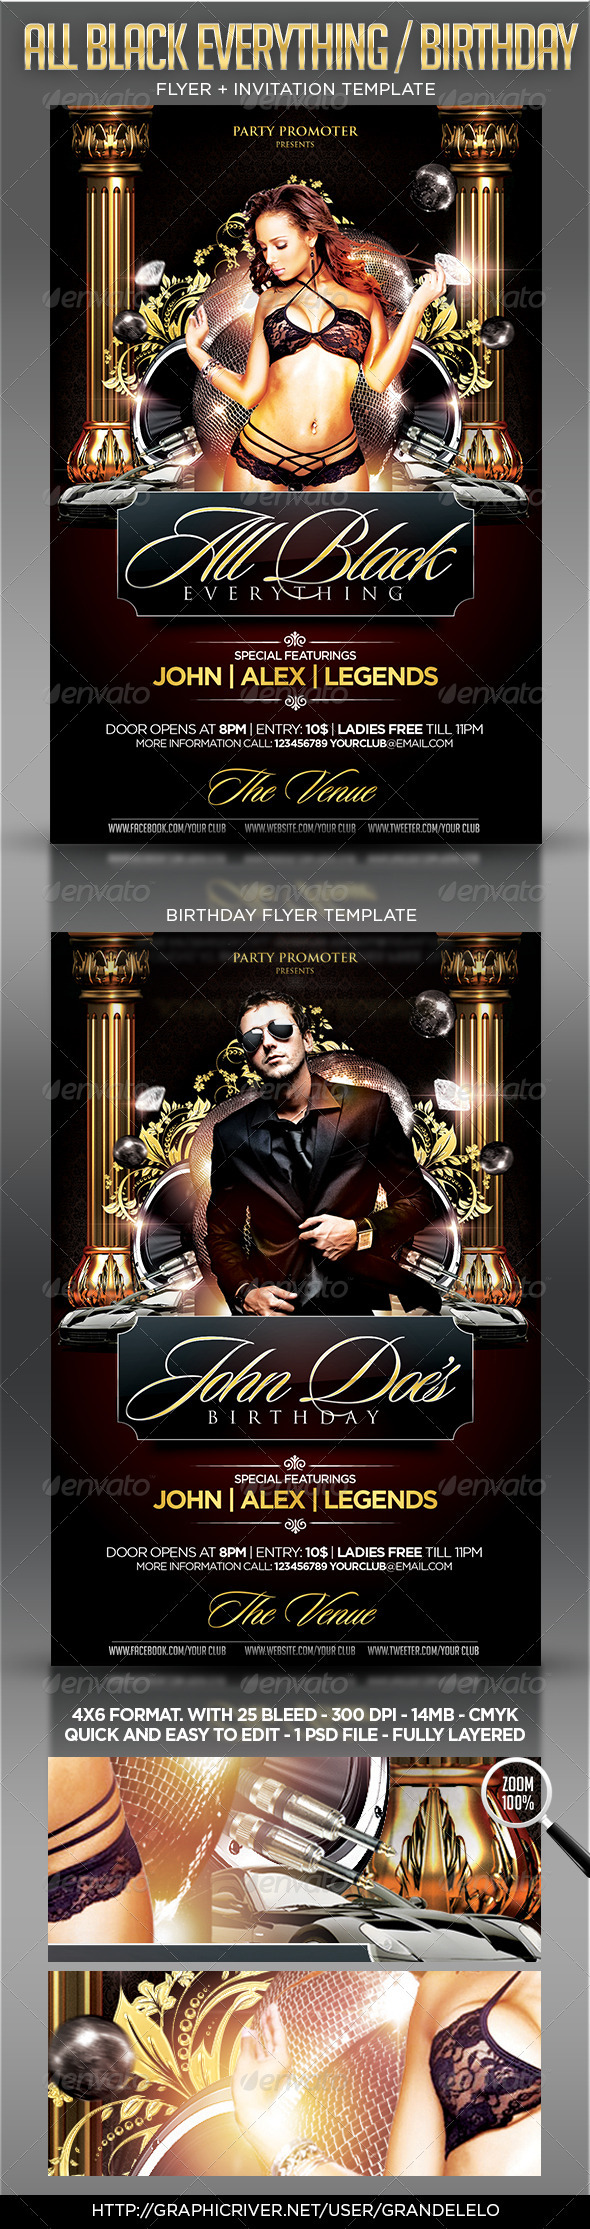 All Black / Birthday Party Flyer Template - Clubs & Parties Events